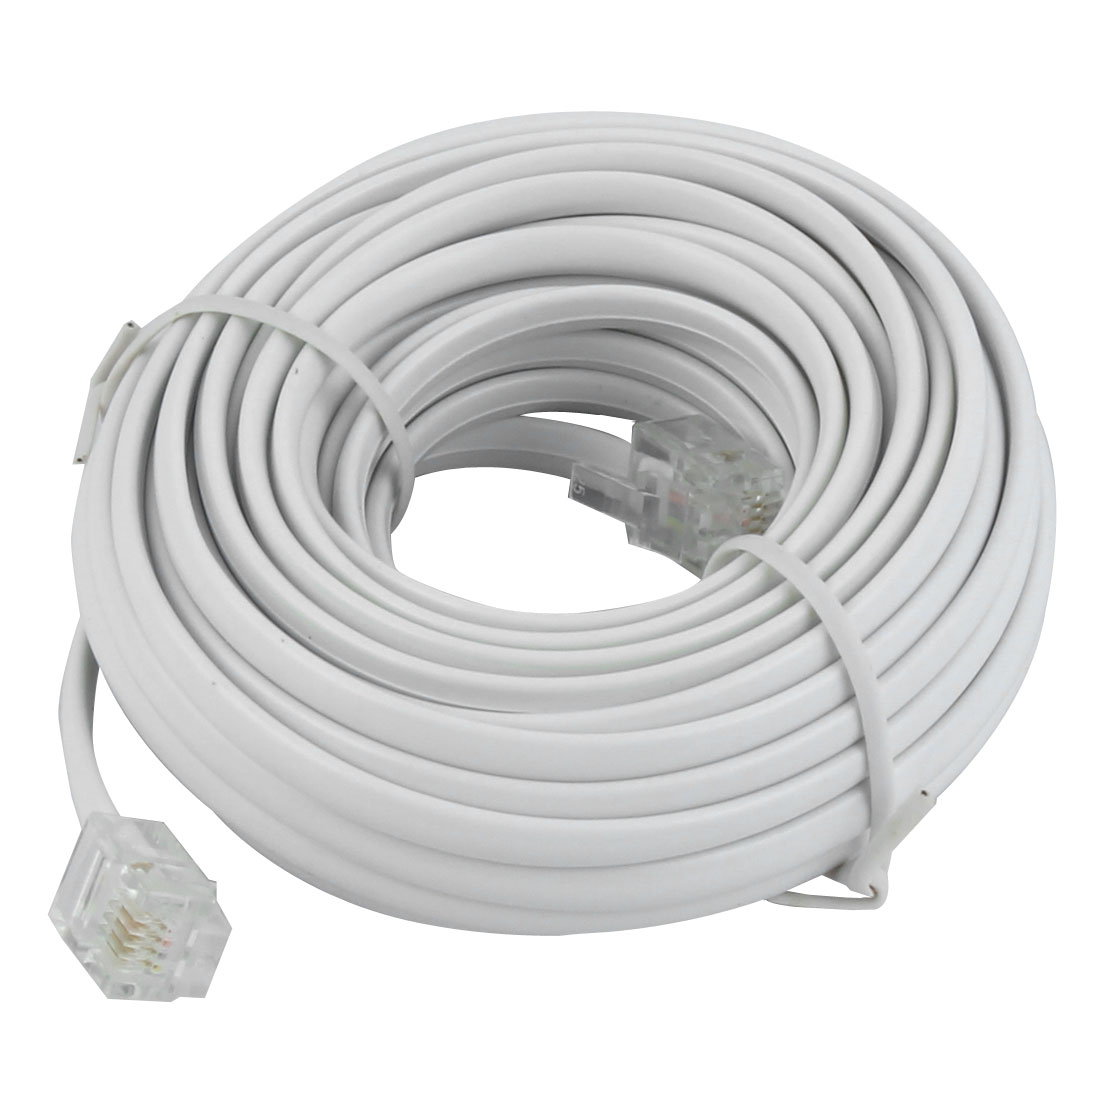 6M 20Ft 6P4C RJ11 Plug Telephone Phone Flat Line Cord Cable White